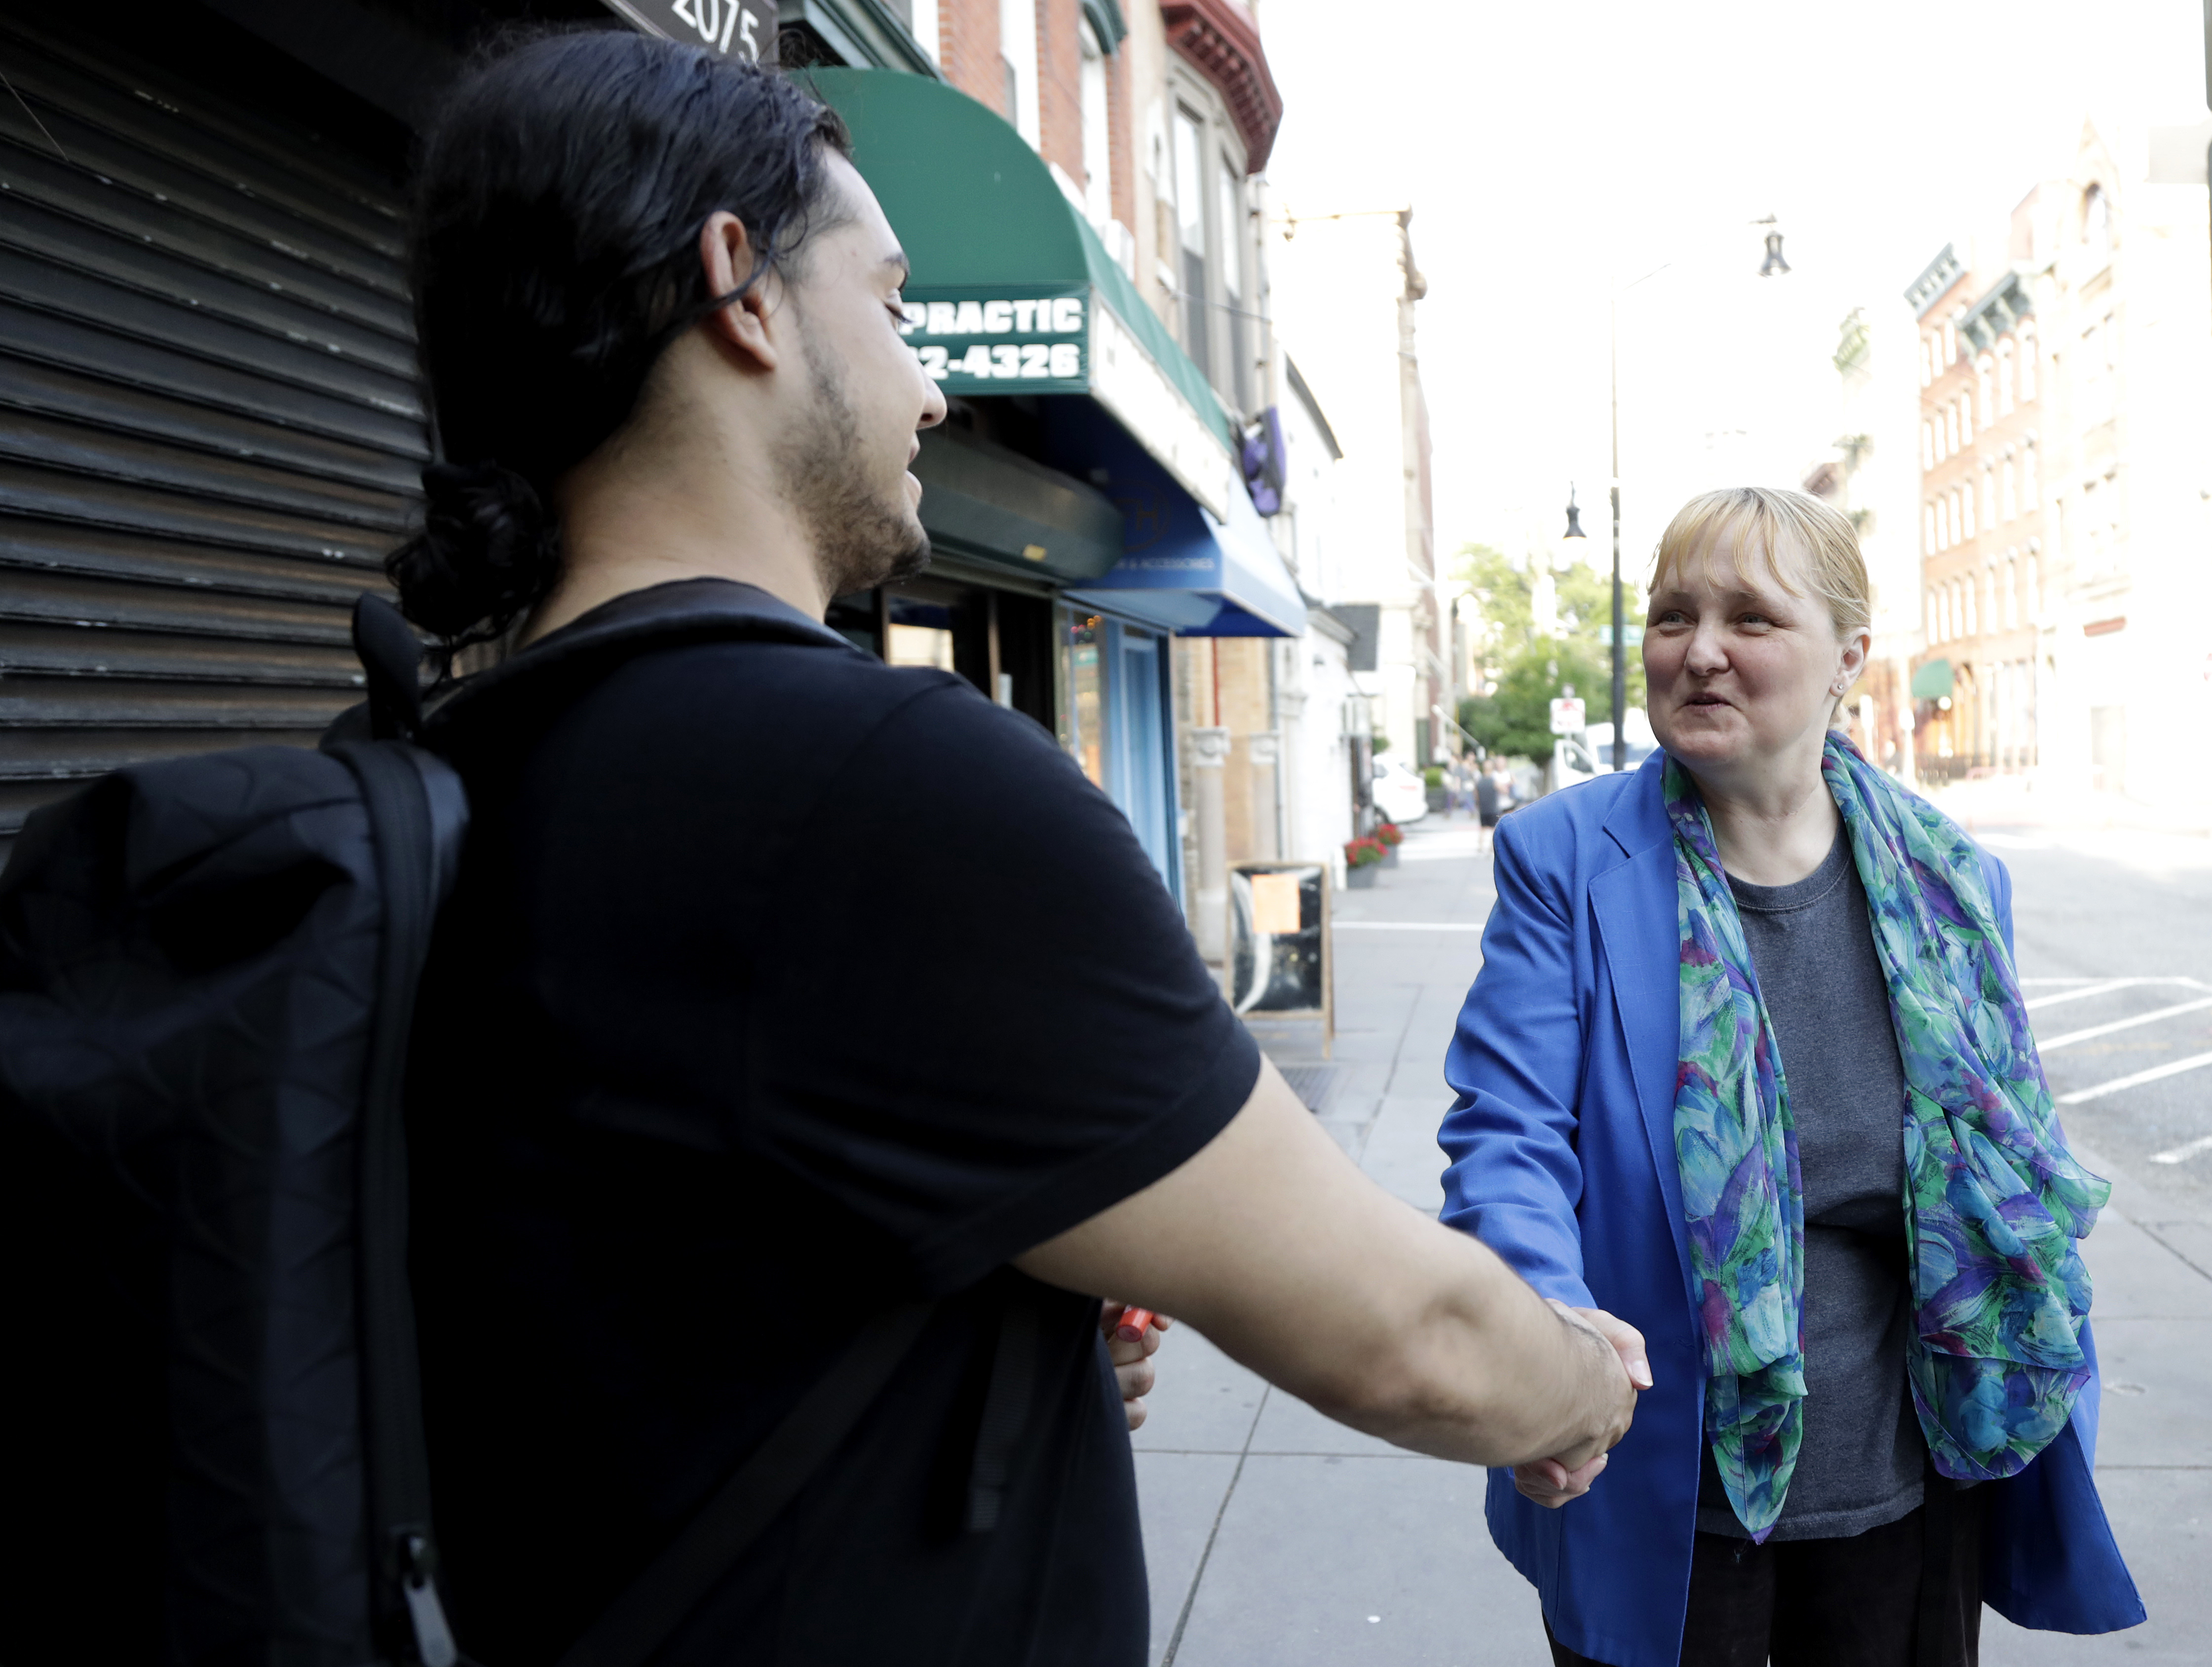 Lisa McCormick, a Democratic candidate running in New Jersey´s June primary for U.S. Senate, talks to Edgar Soto while campaigning in downtown Jersey City, N.J., Friday, June 1, 2018. This year´s race for a U.S. Senate seat from New Jersey won´t start officially until after the Democratic and Republican primaries on Tuesday, June 5.